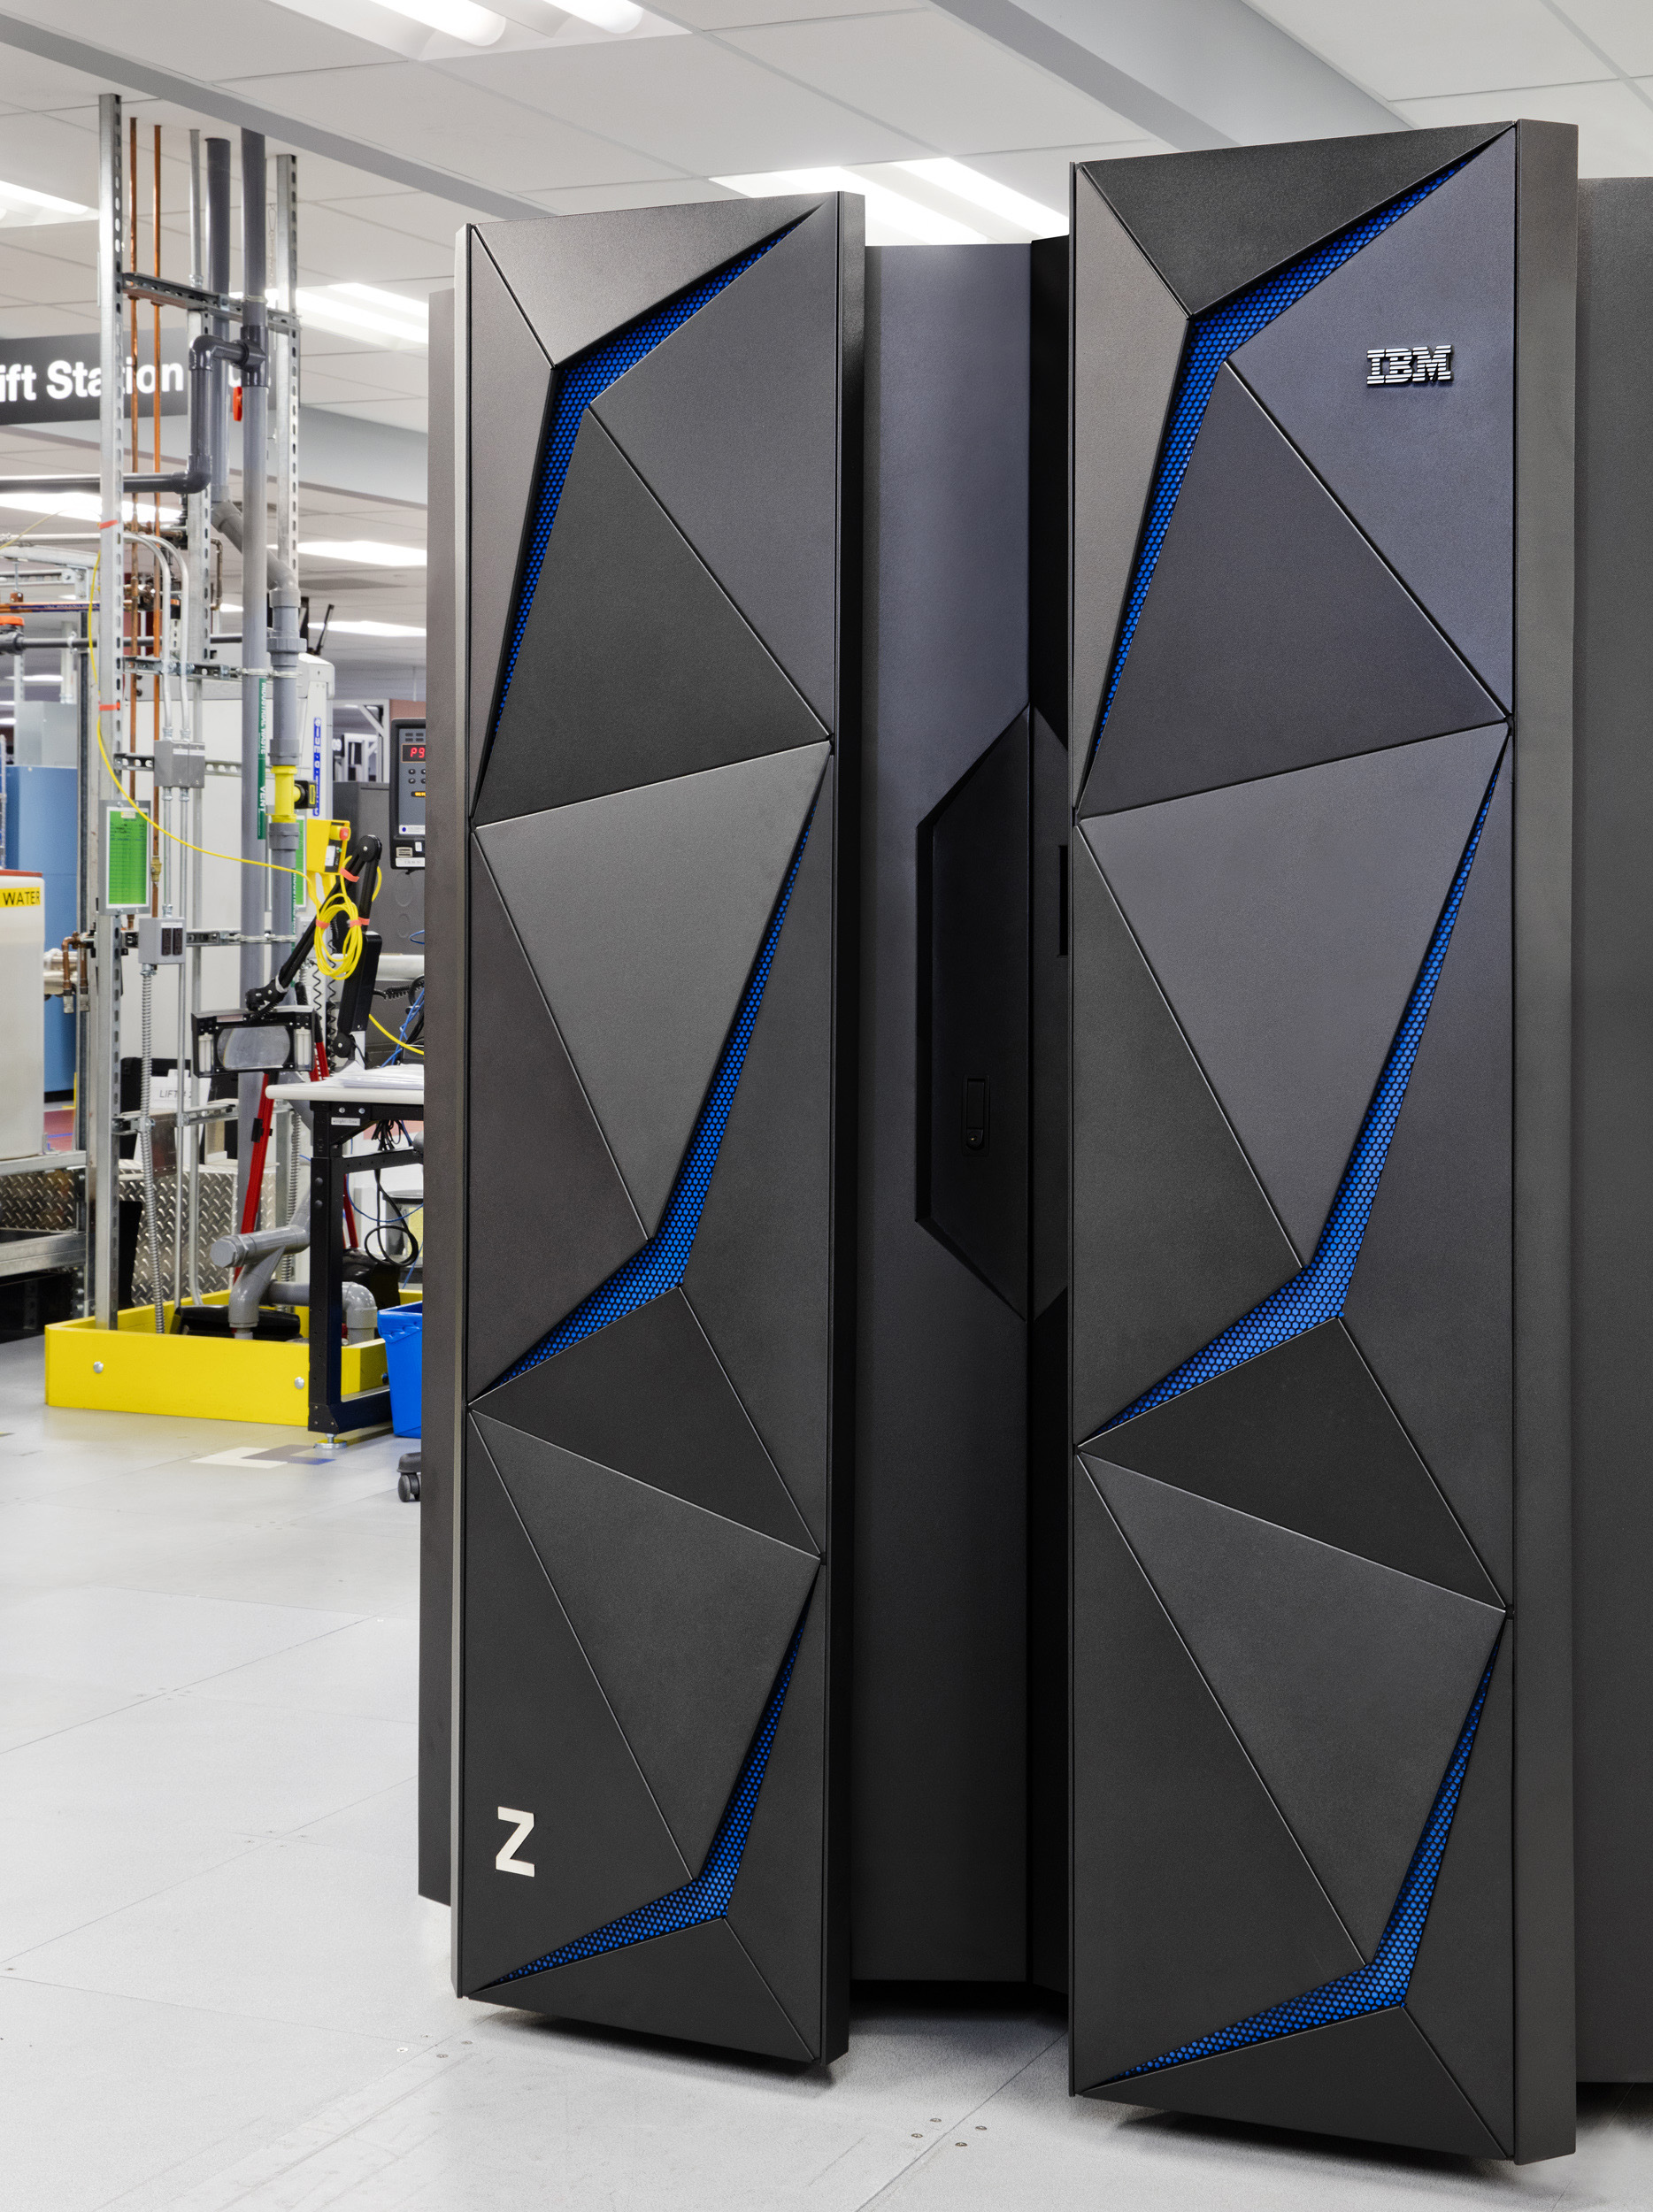 The IBM Z mainframe is a breakthrough in data protection technology designed to tackle the epidemic of data breaches. Contact: Lori Bosio, IBM, bosiol@us.ibm.com 914-765-2367 (Photo Credit: Connie Zhou for IBM)